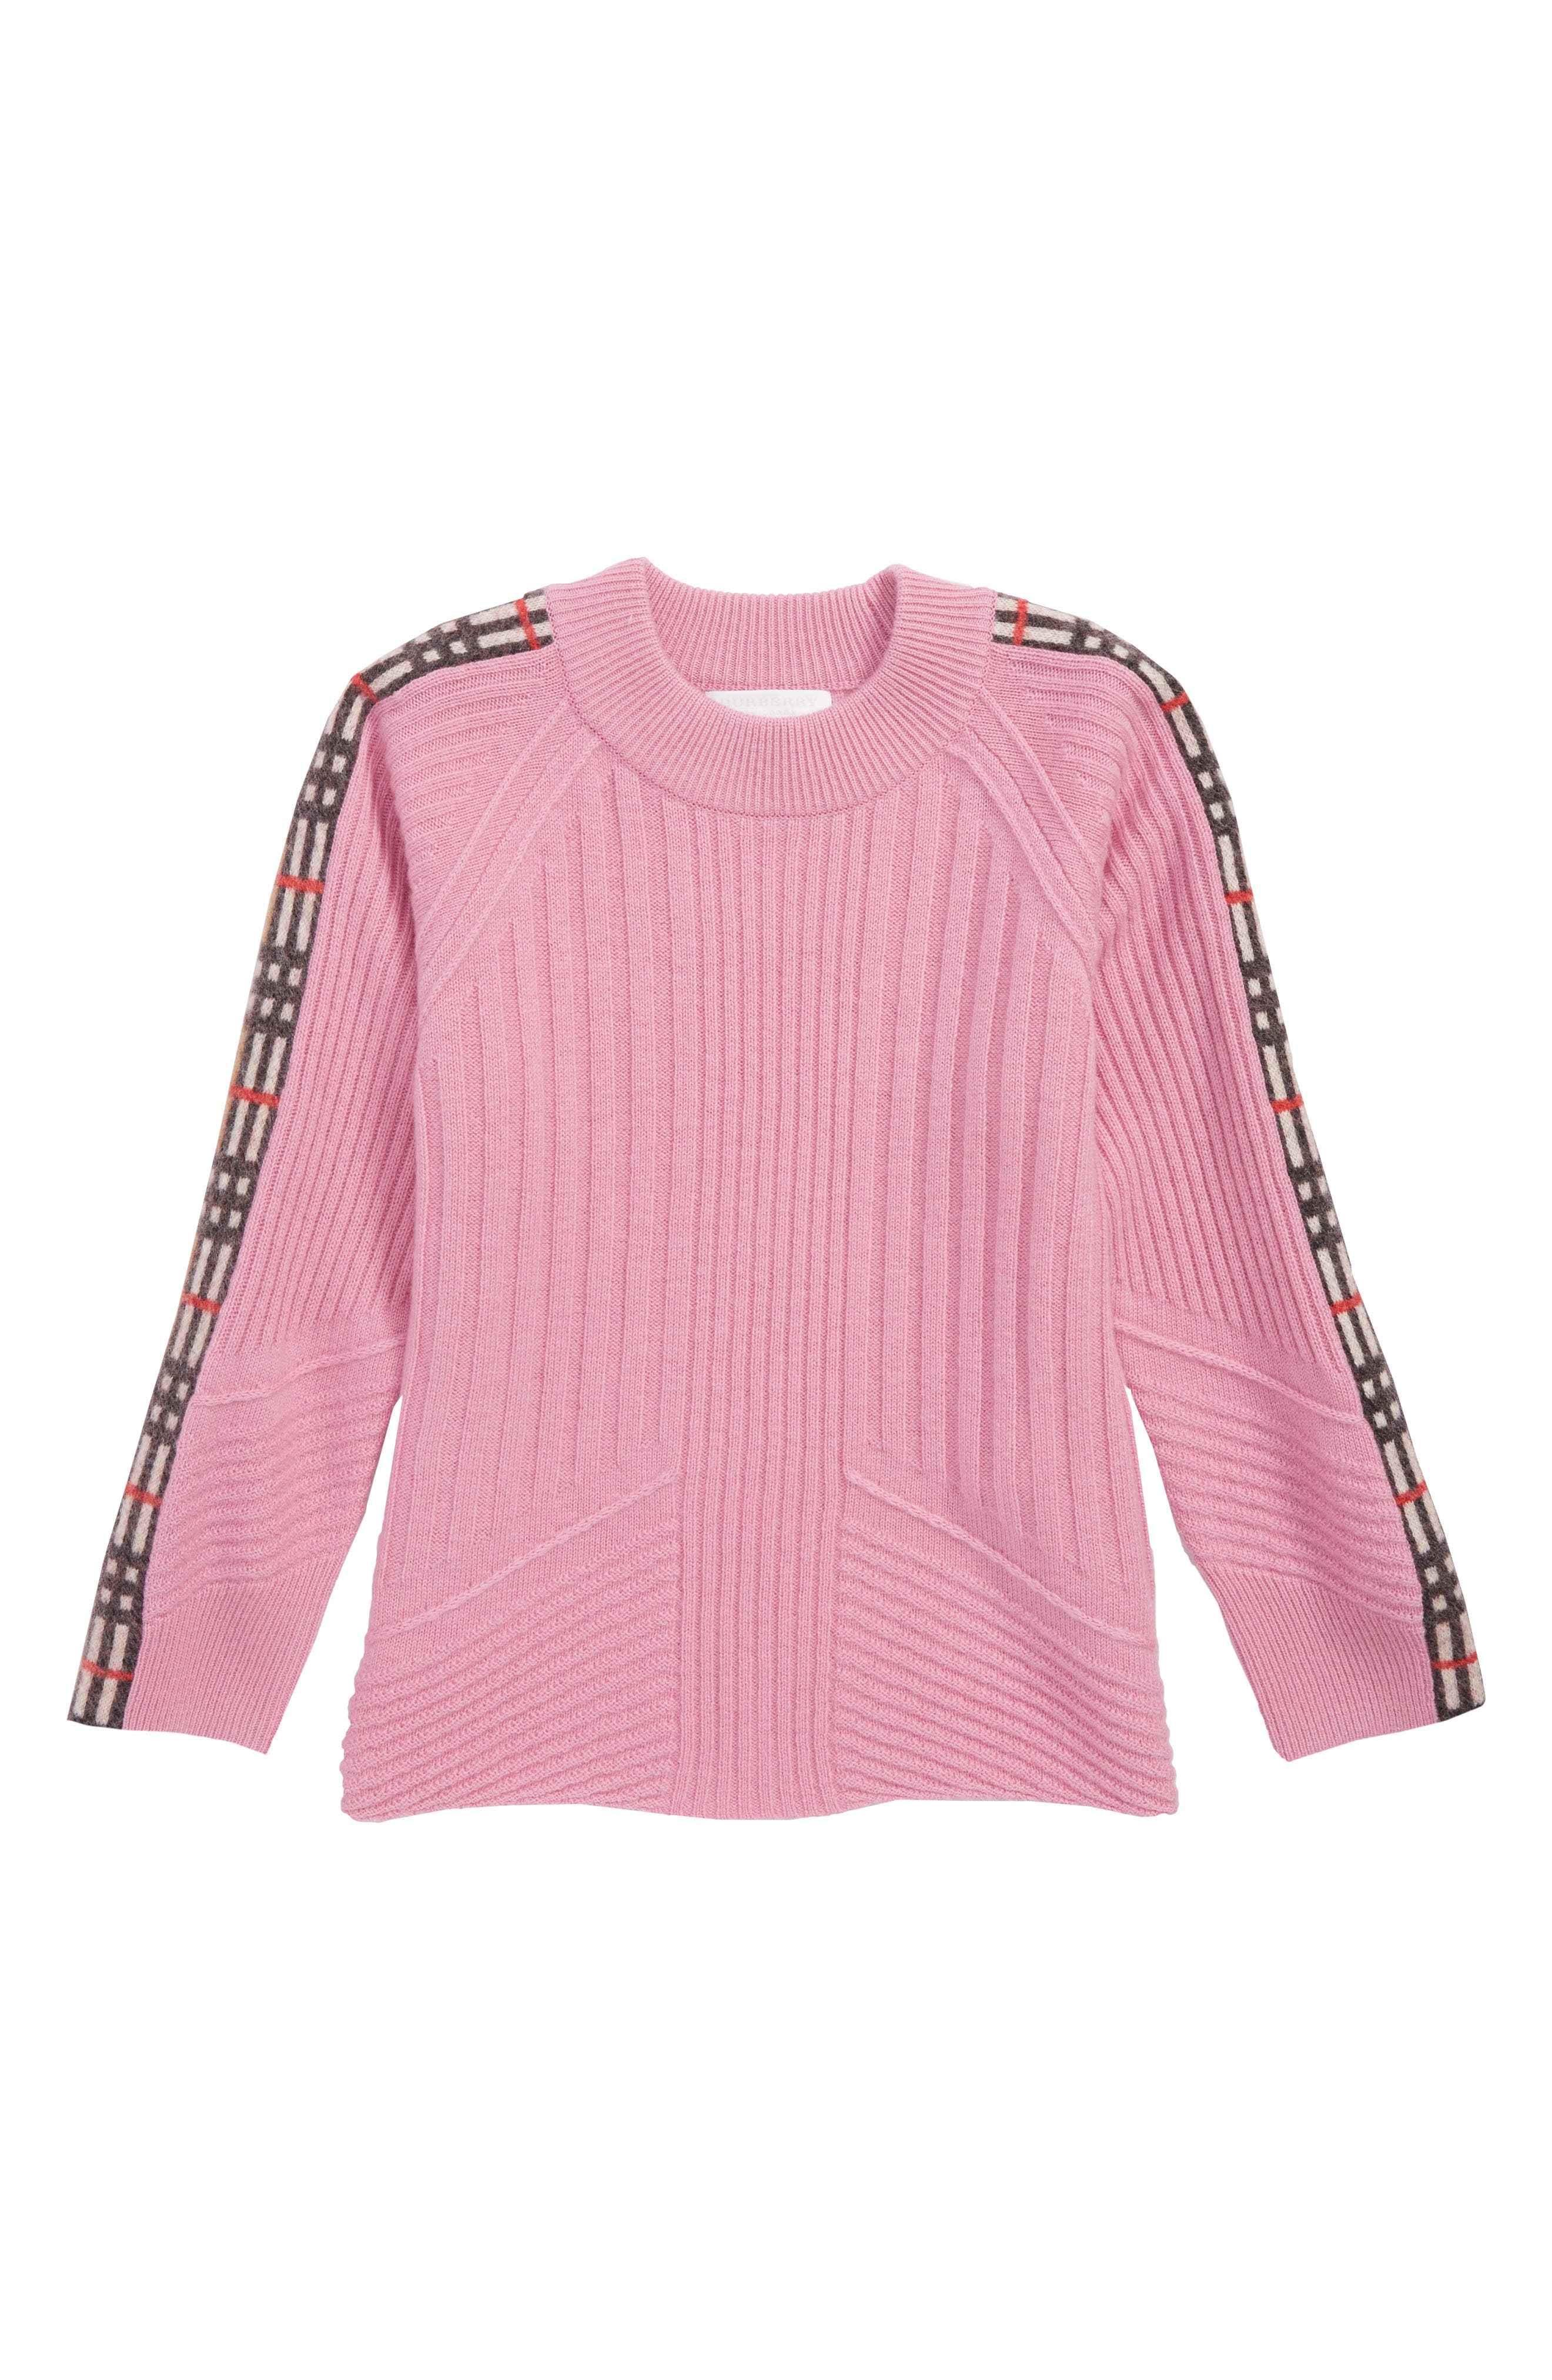 Cathie Mixed Stitch Pullover Sweater,                             Main thumbnail 1, color,                             ROSE PINK